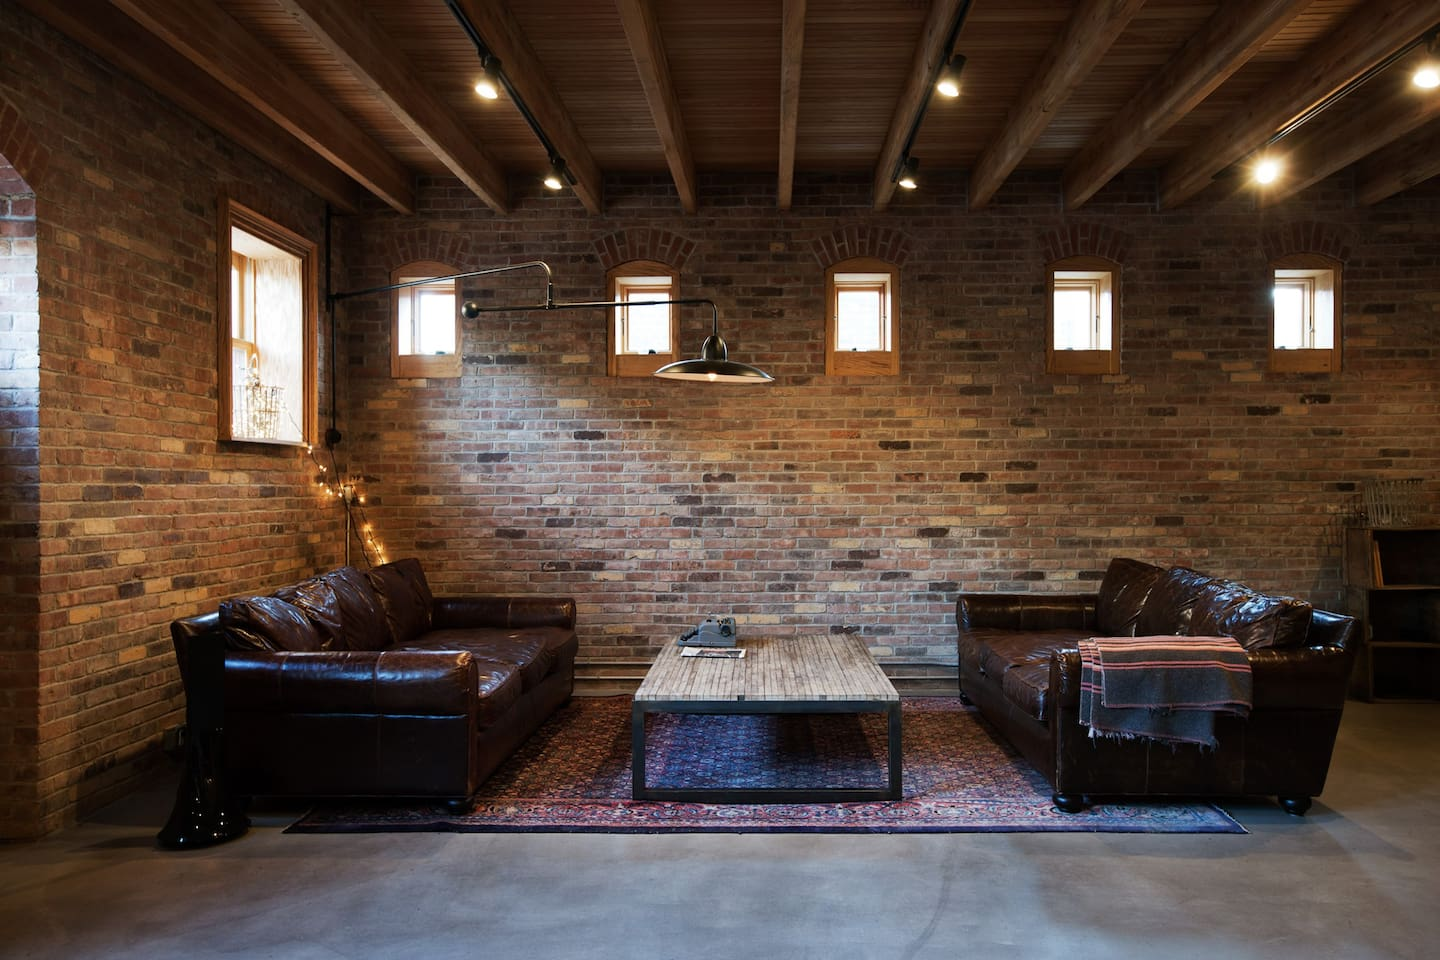 Twin leather couches and recycled bowling alley wood table. Windows for horses' heads